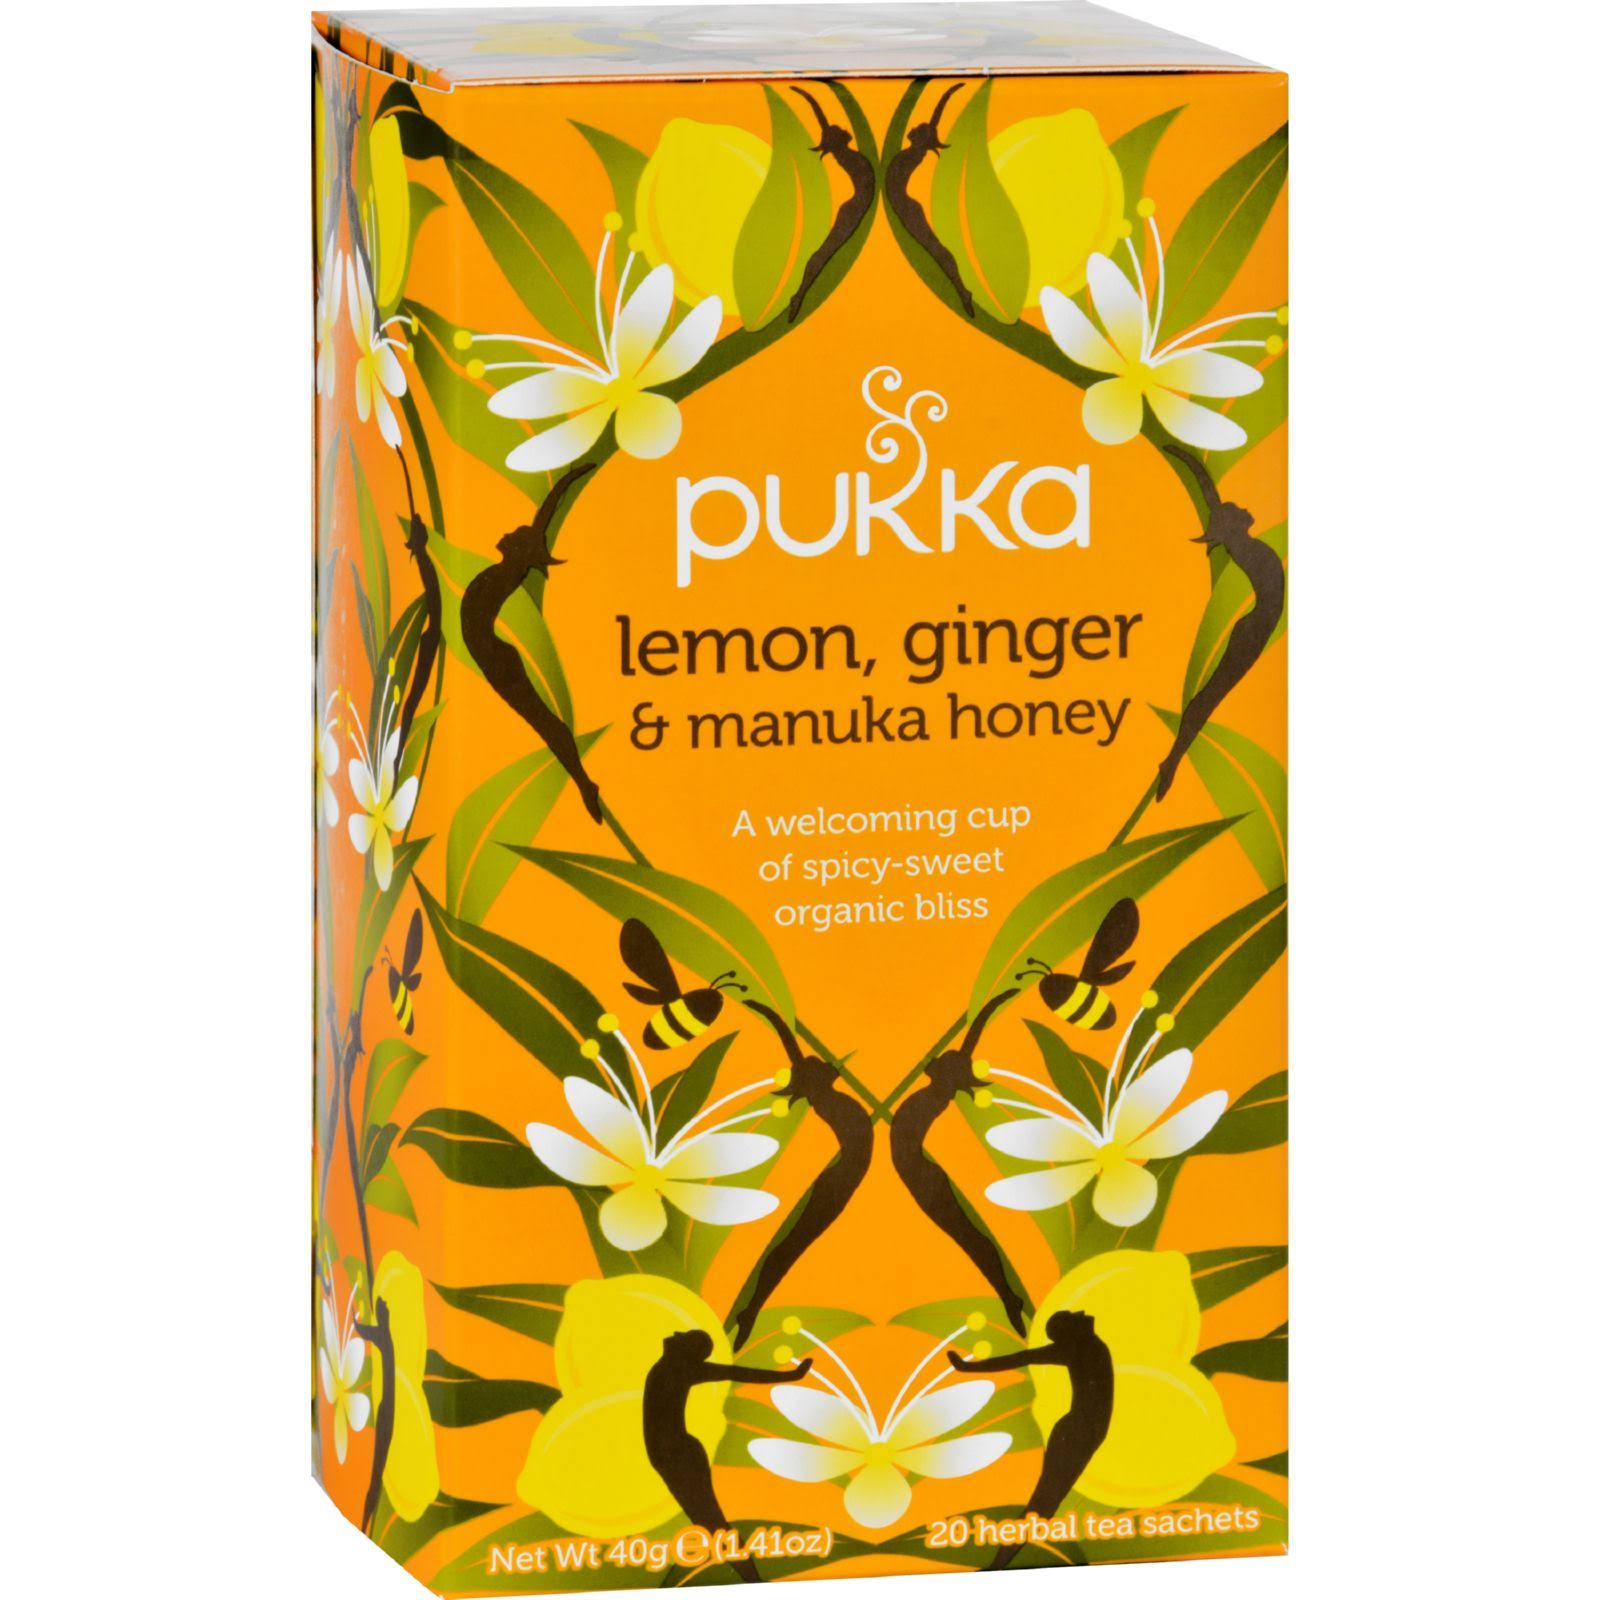 Pukka Organic Lemon Ginger and Manuka Honey Tea - 20 Sachets